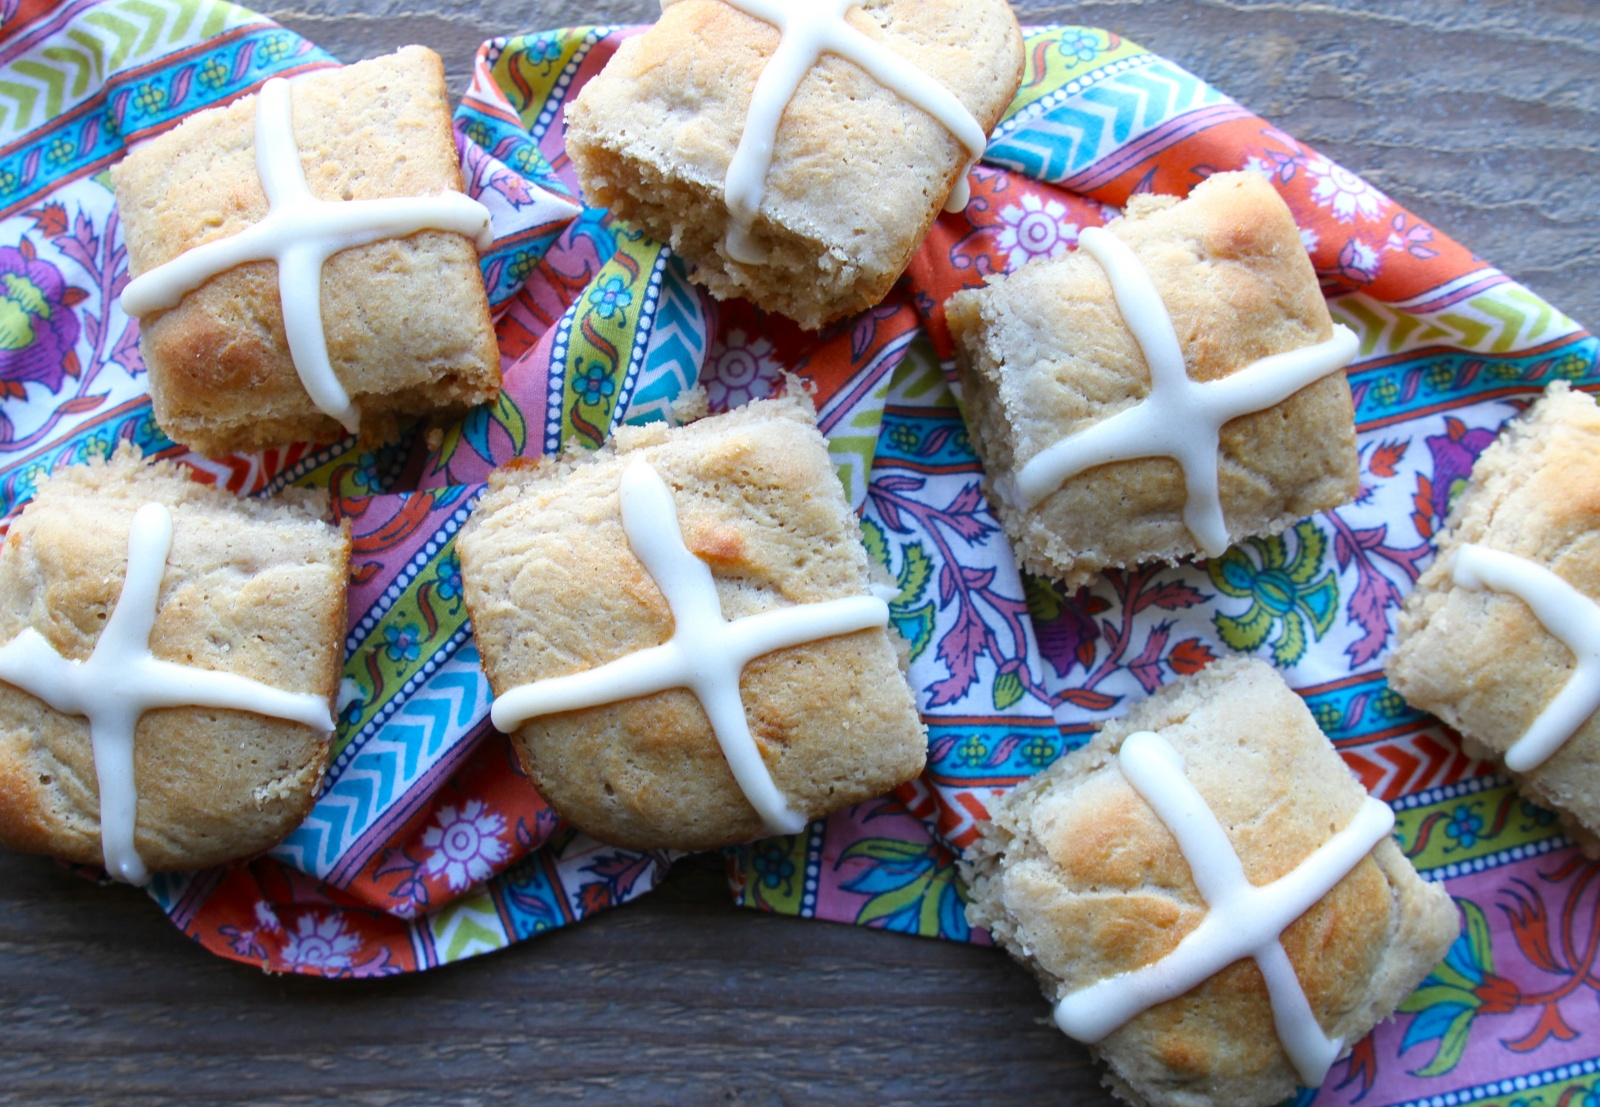 Grain-Free Hot Cross Buns